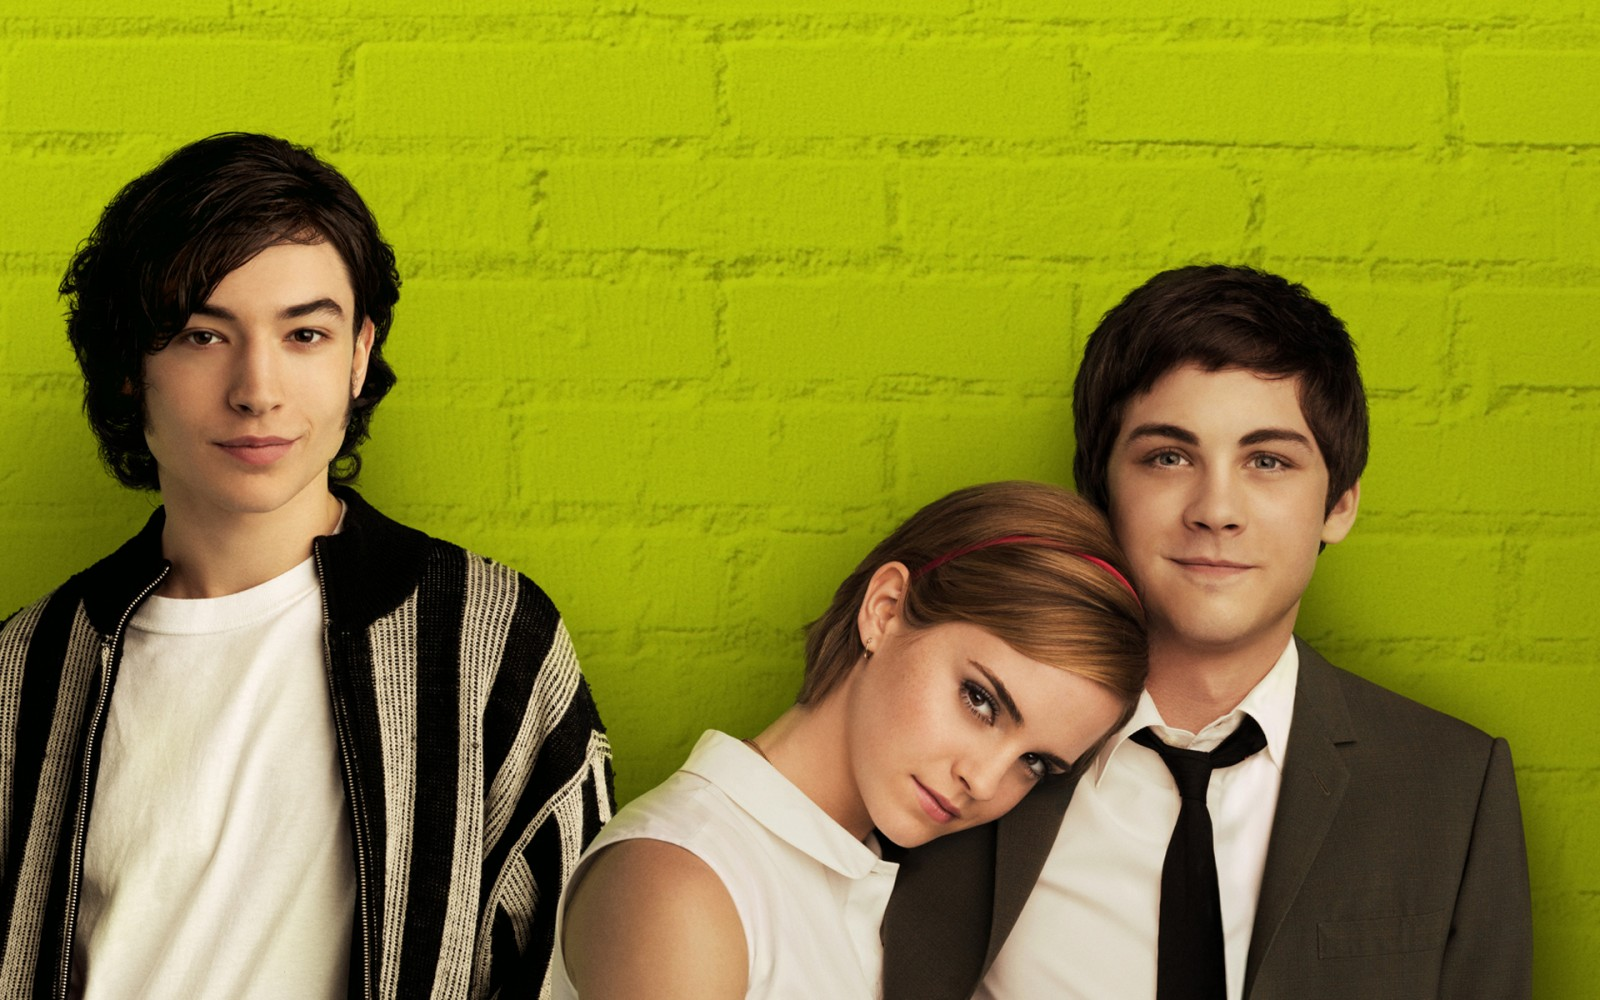 the-perks-of-being-a-wallflower-hd-wallpapers